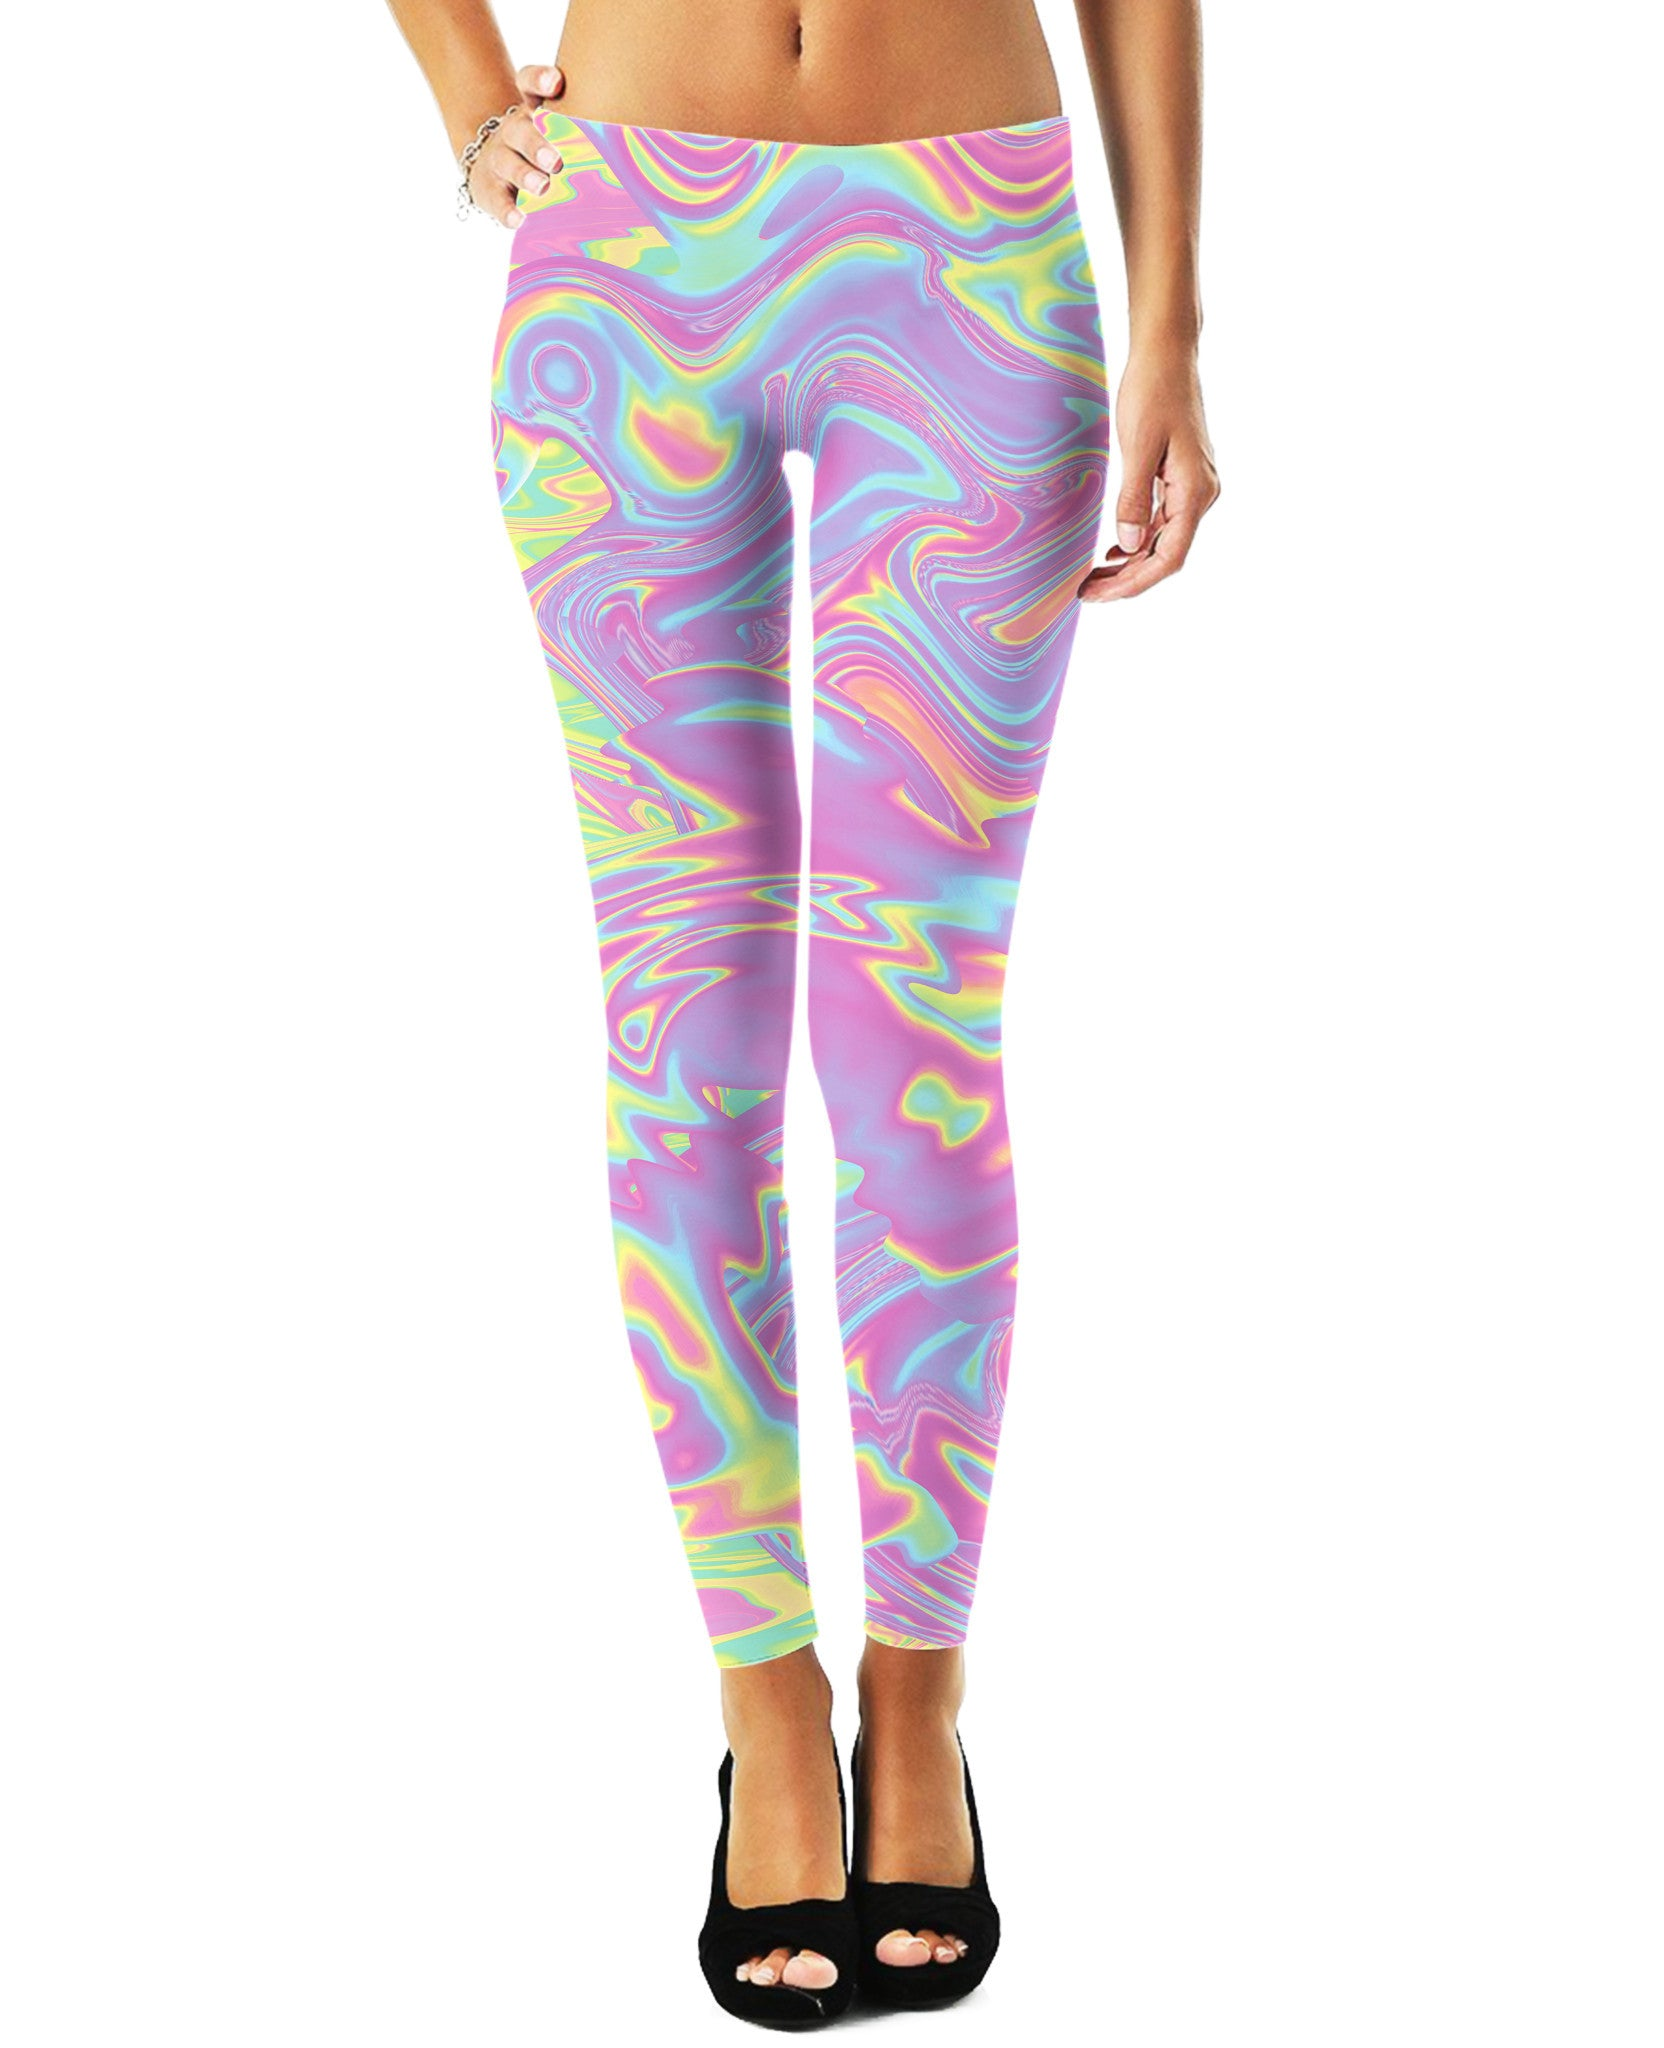 Goth Pastel Leggings